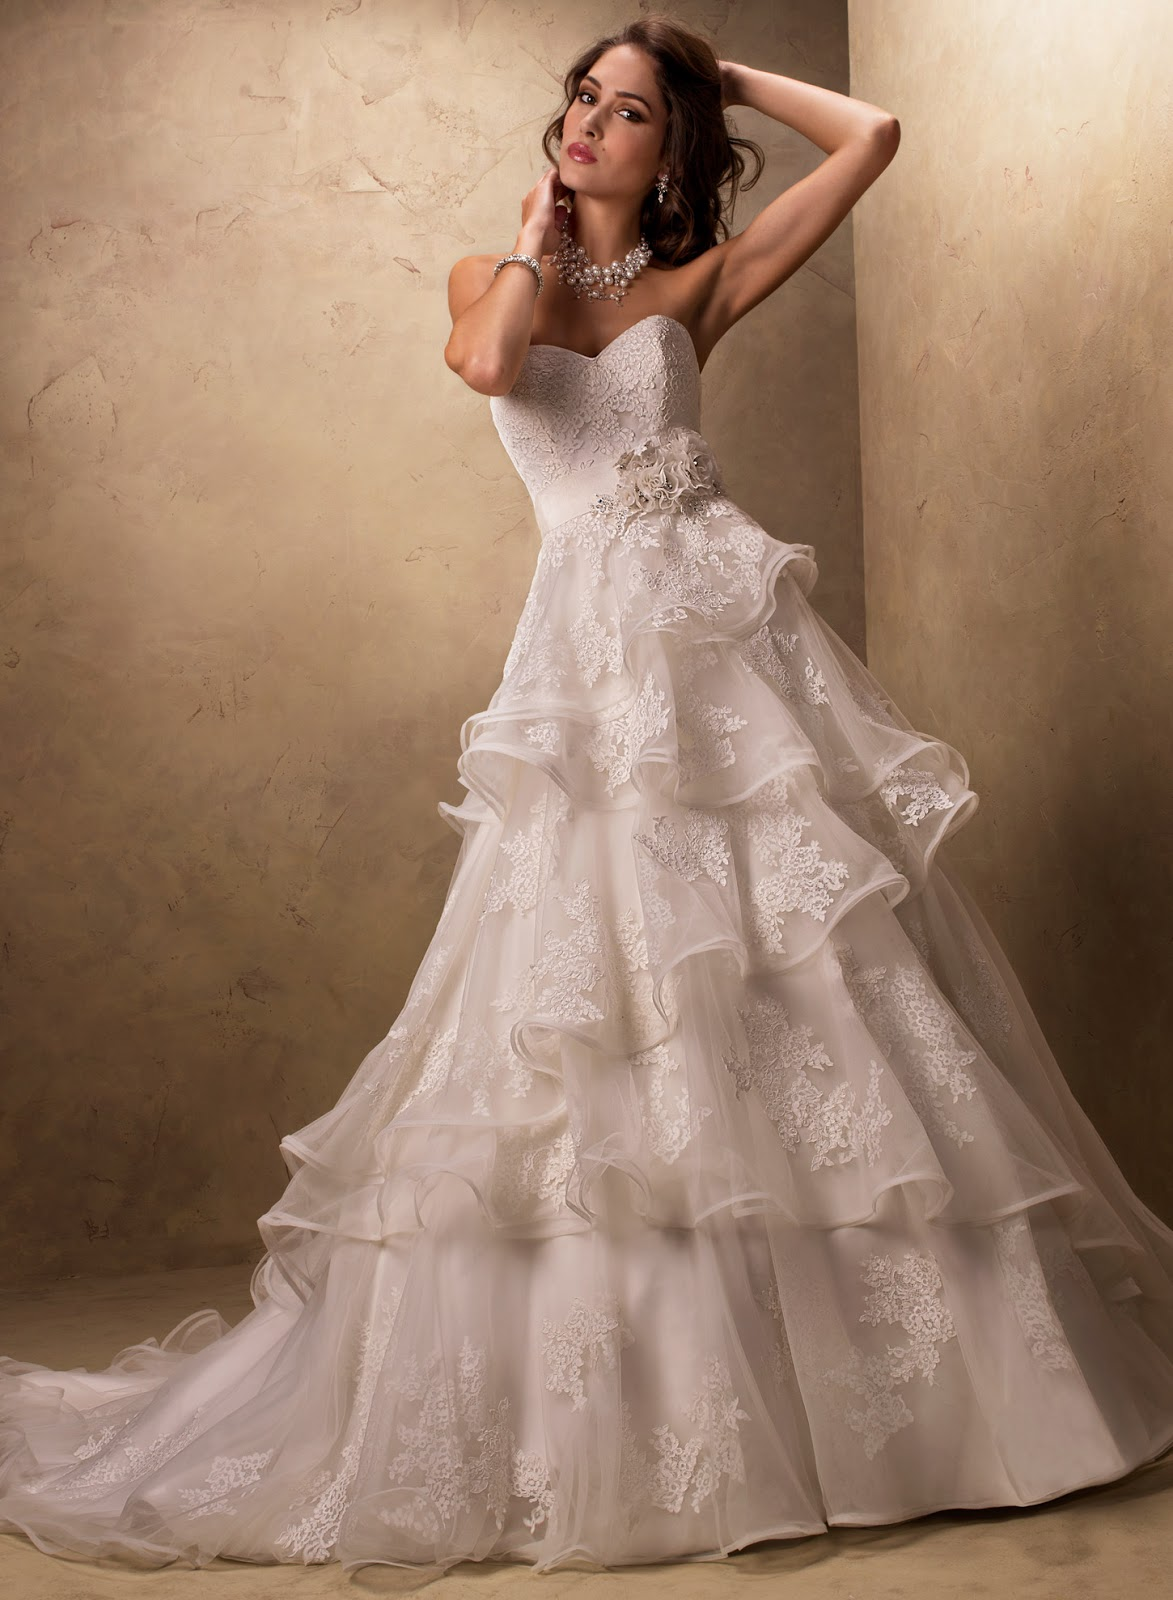 Blog of wedding and occasion wear may 2013 for Picture of a wedding dress